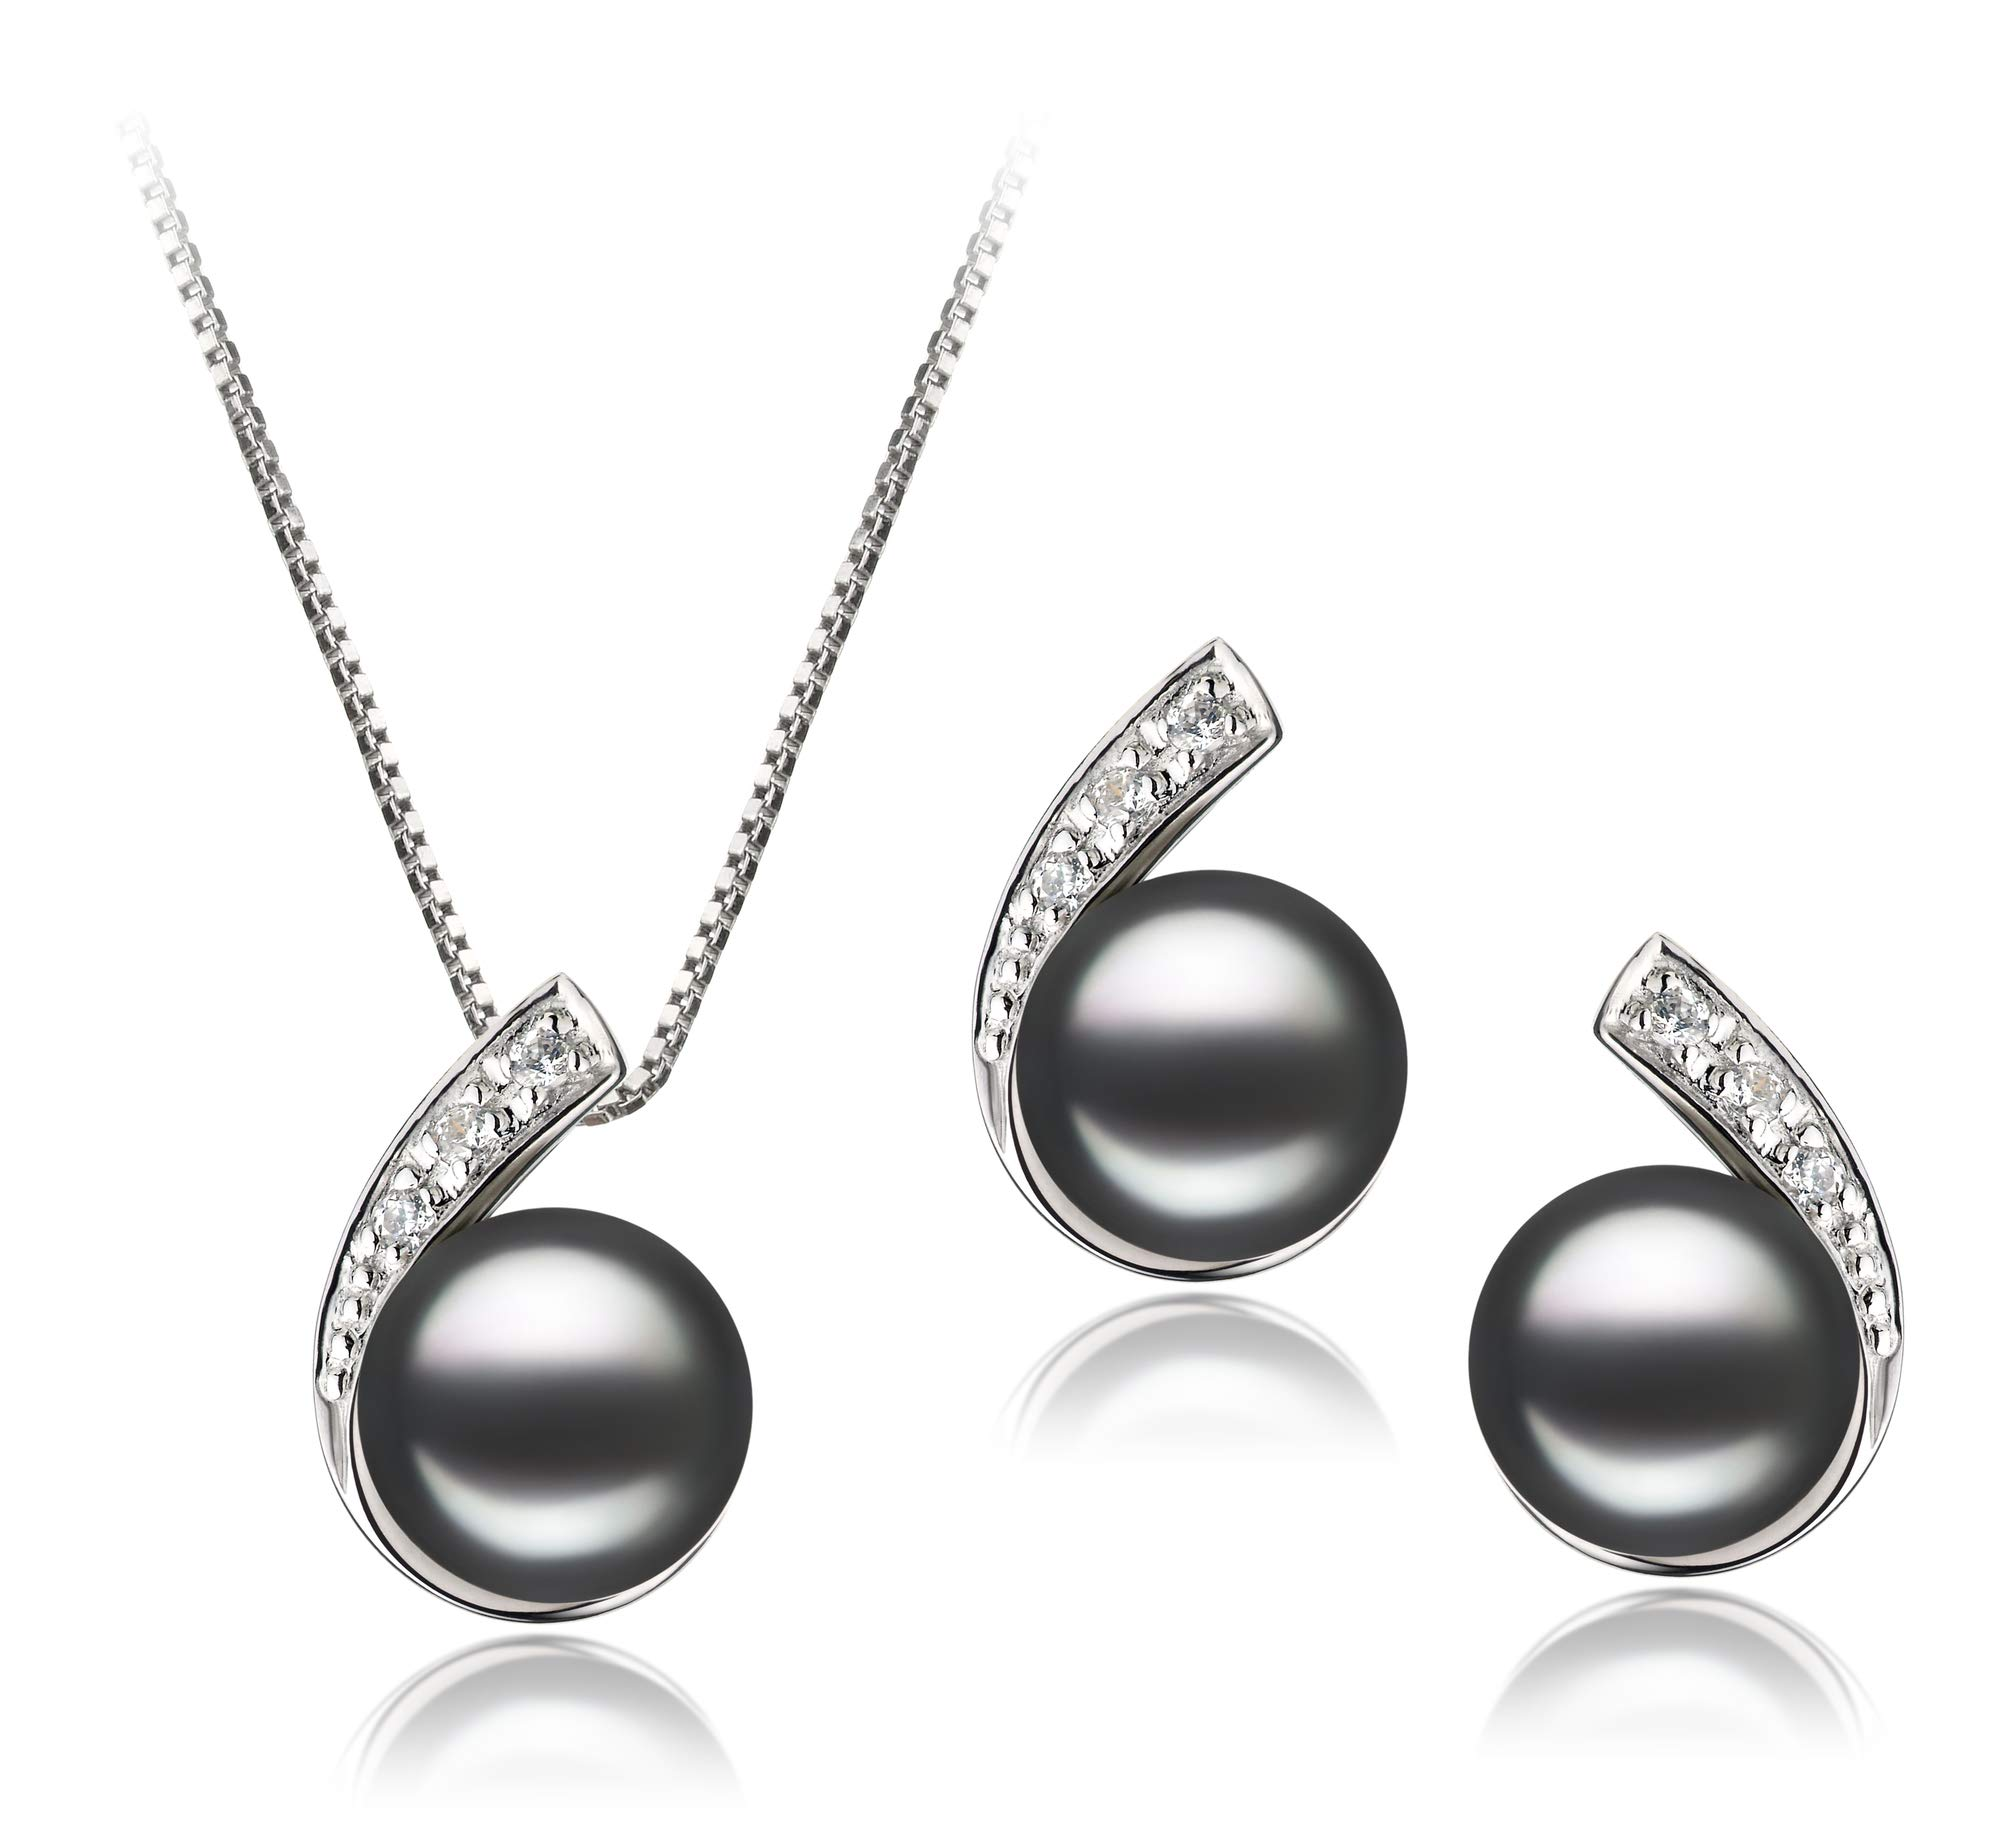 Claudia Black 7-8mm AA Quality Freshwater 925 Sterling Silver Cultured Pearl Set For Women